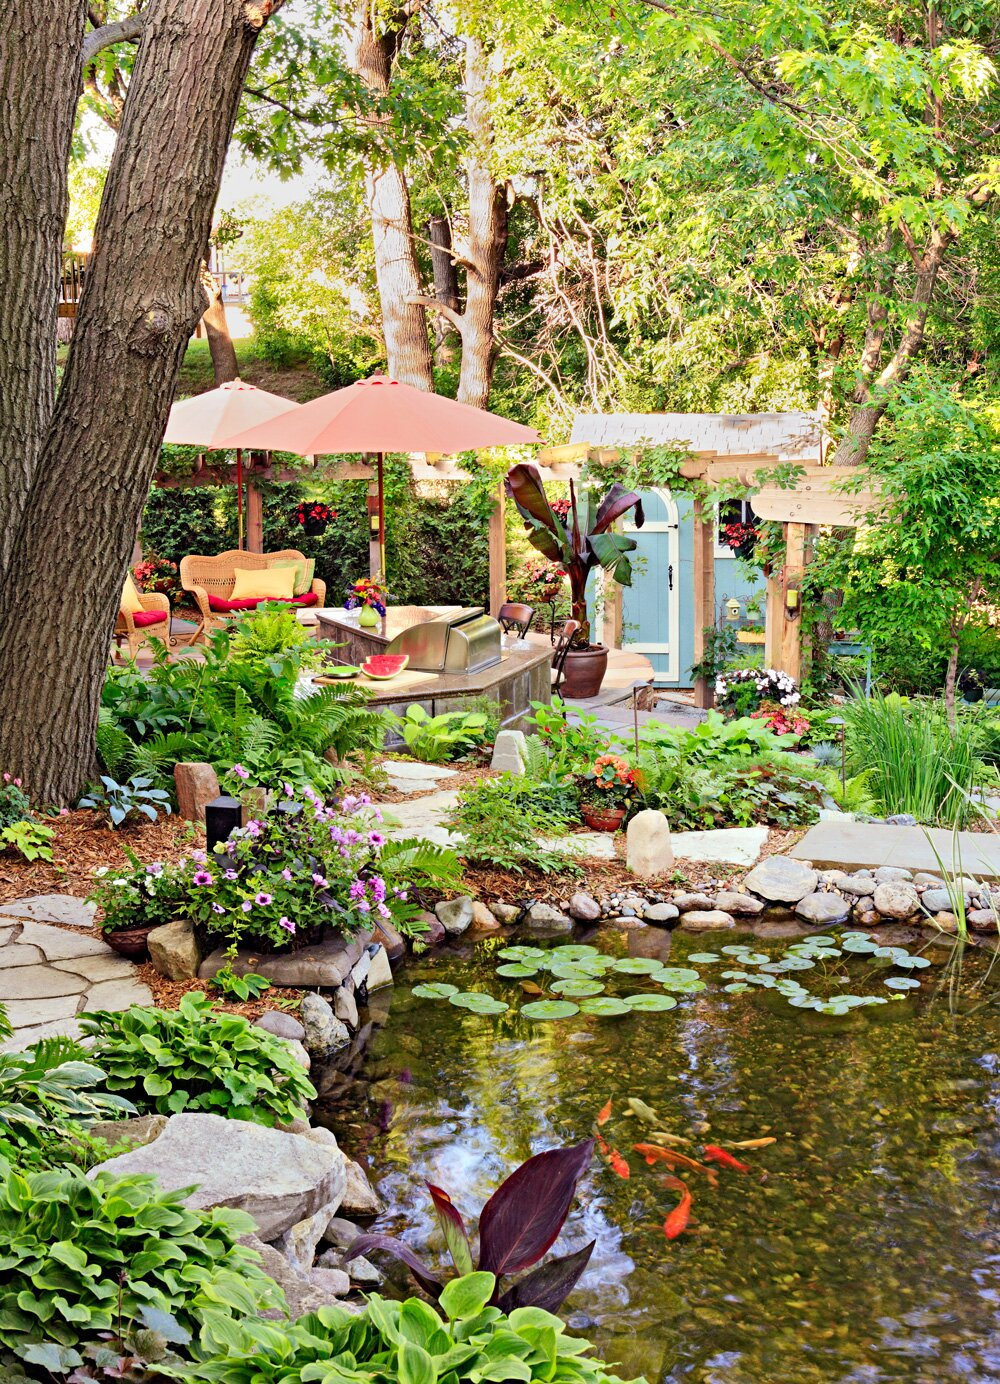 How to Make Your Backyard a Vacation Oasis  Midwest Living